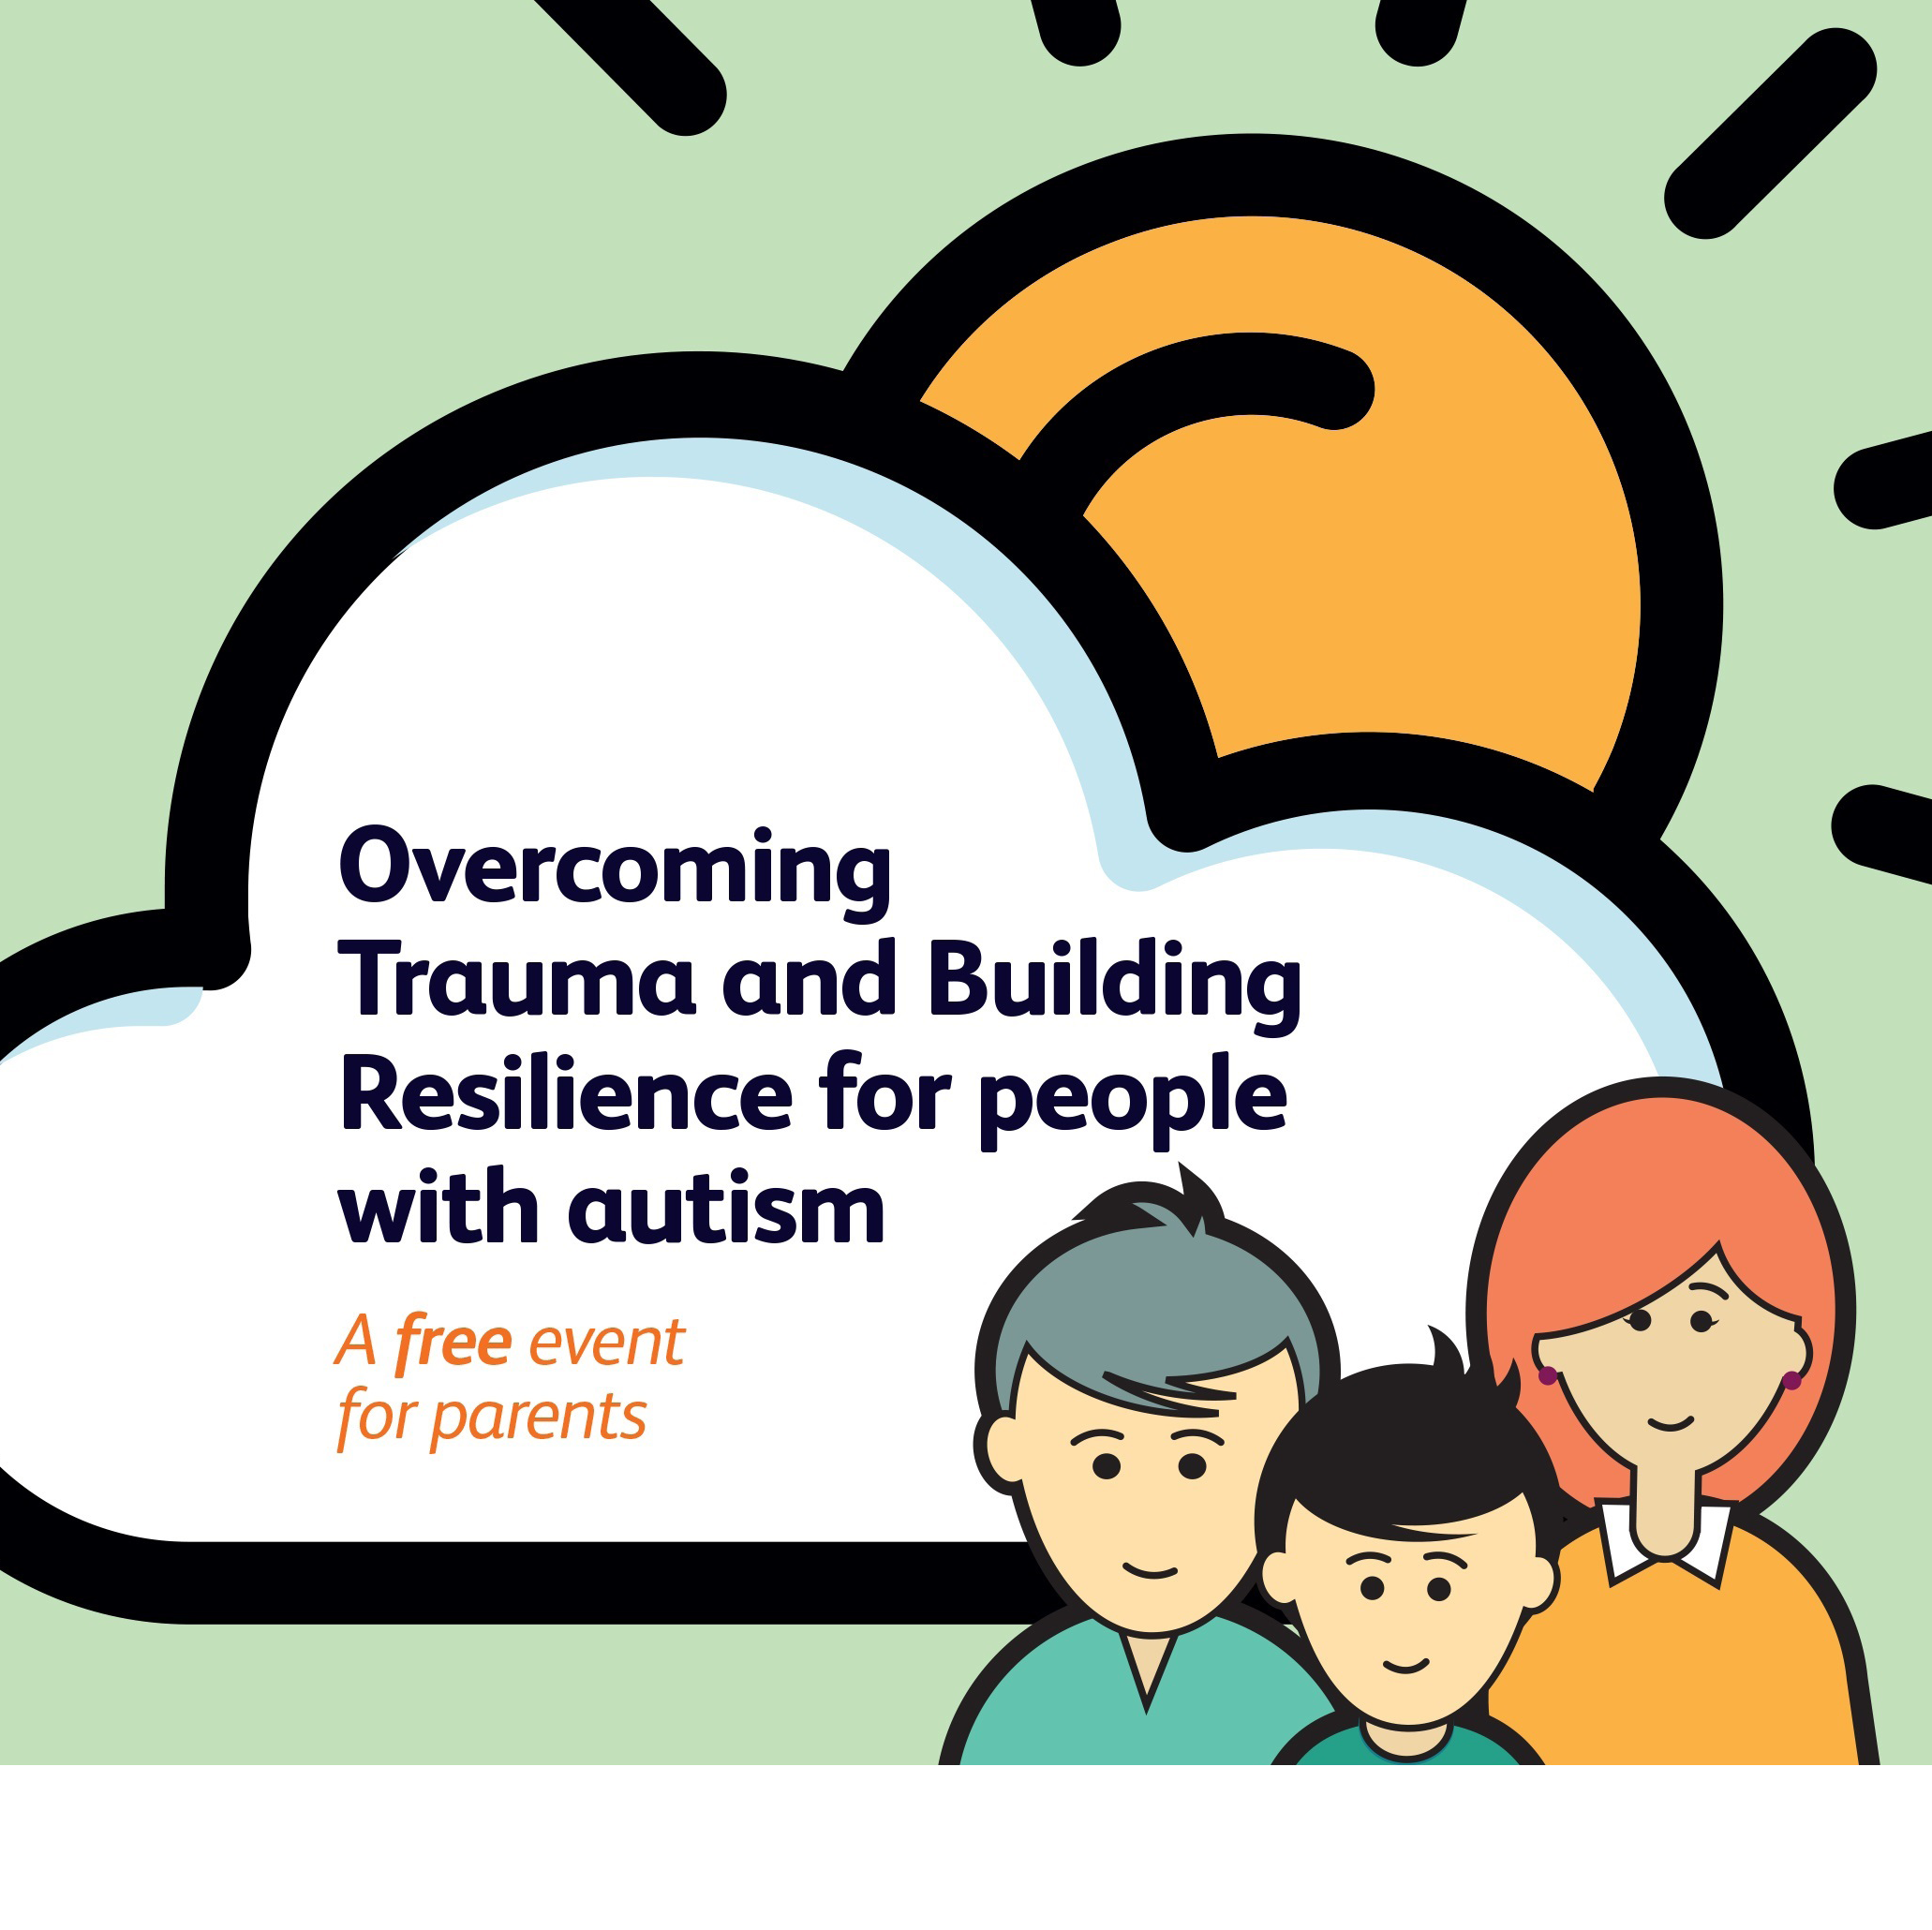 FREE Parents Event - Overcoming Trauma and Building Resilience for people with autism